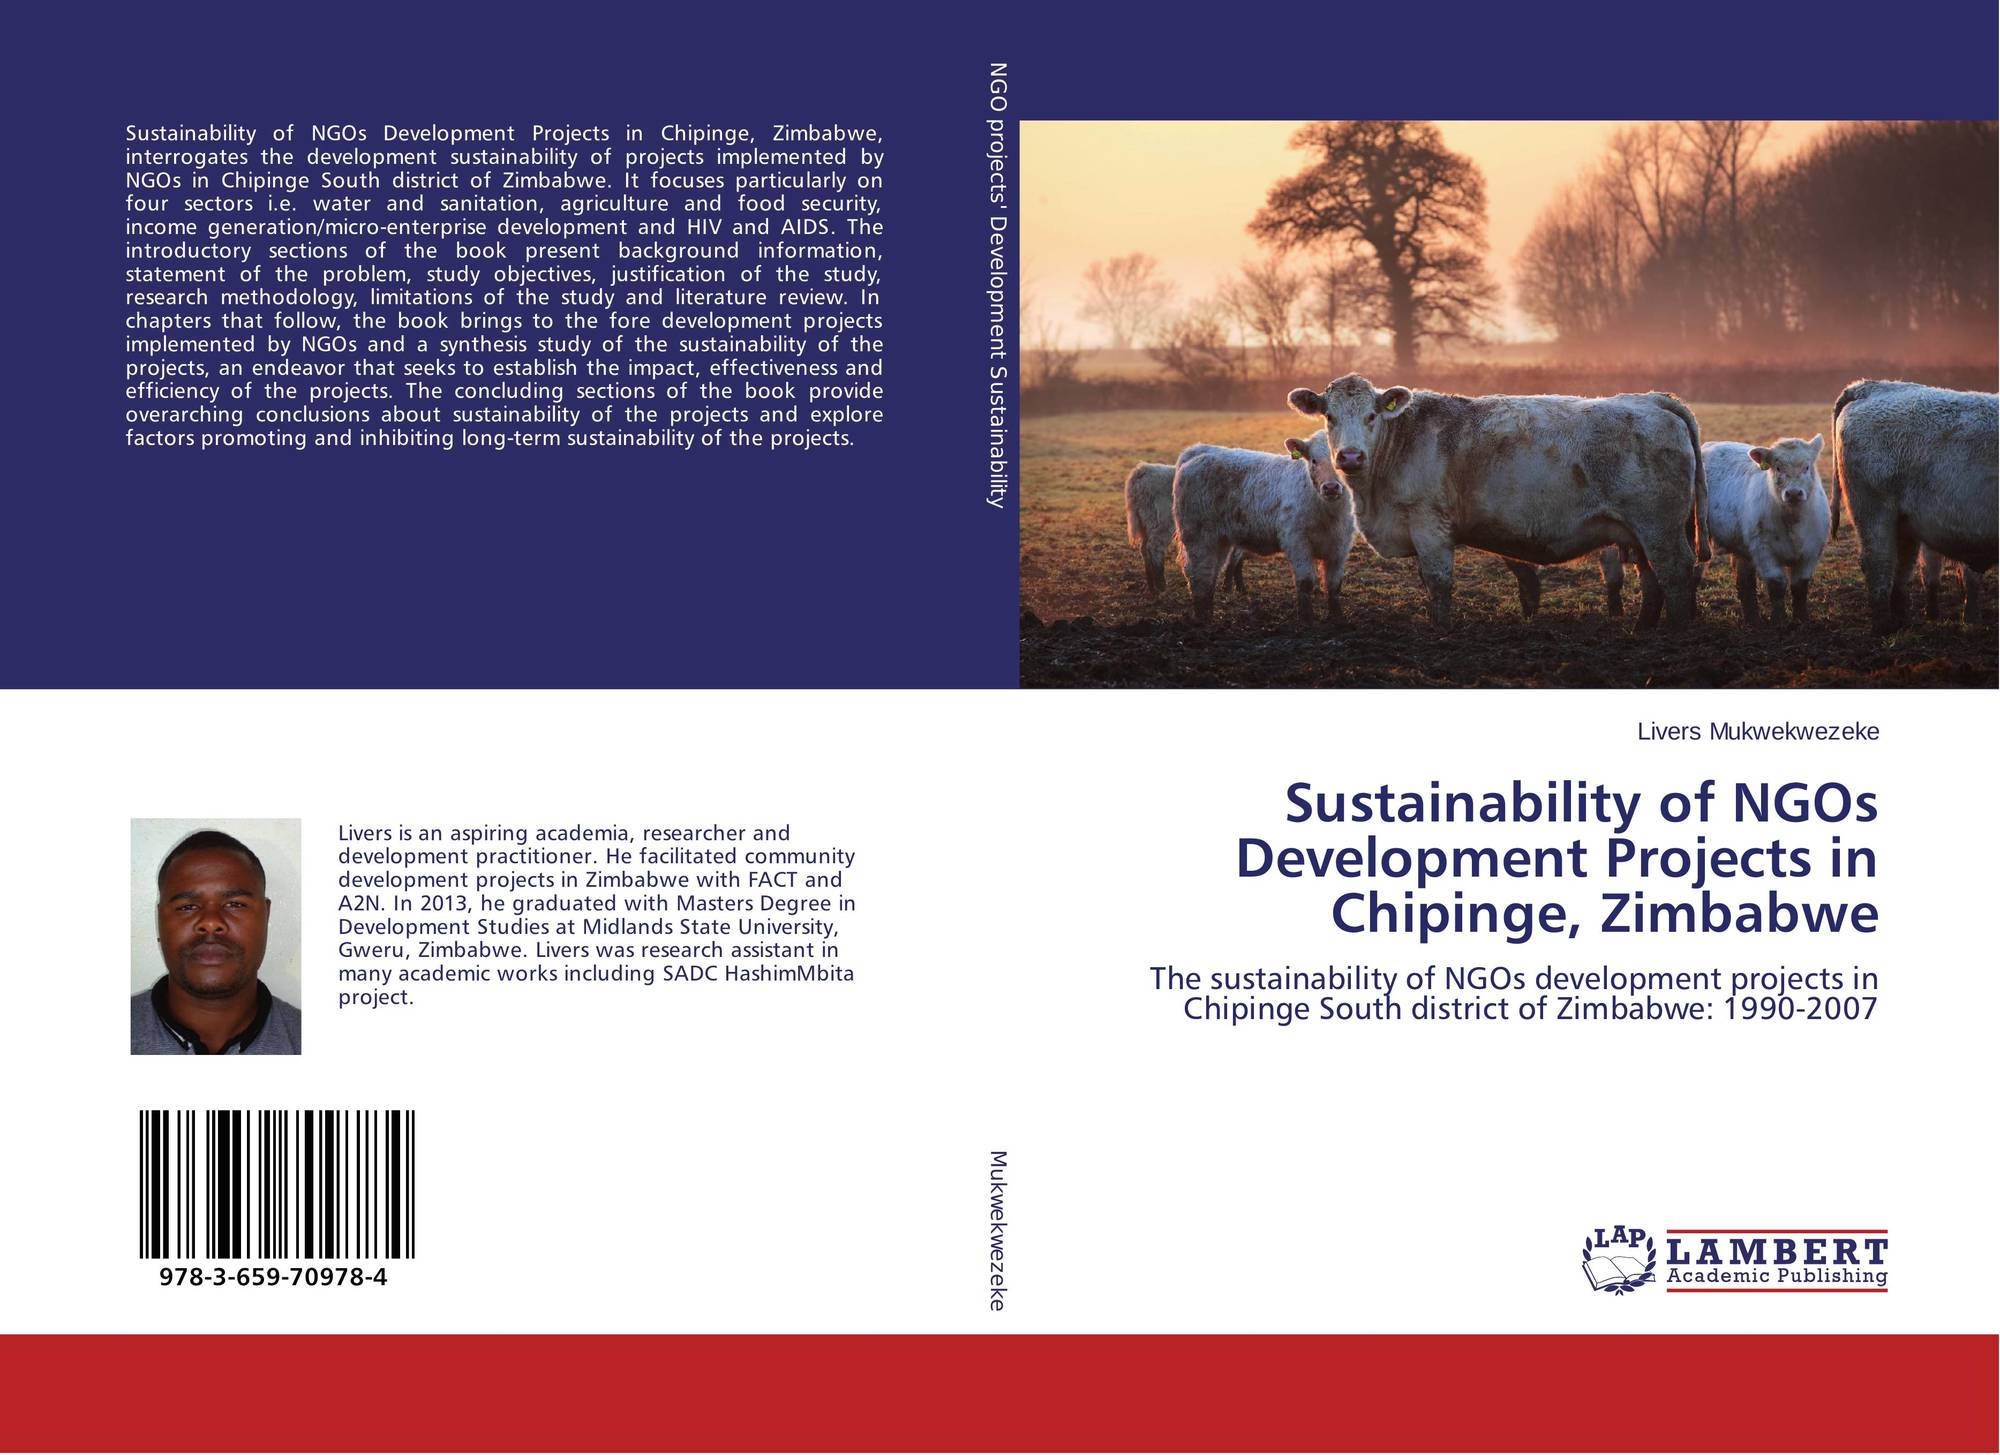 Sustainability of NGOs Development Projects in Chipinge